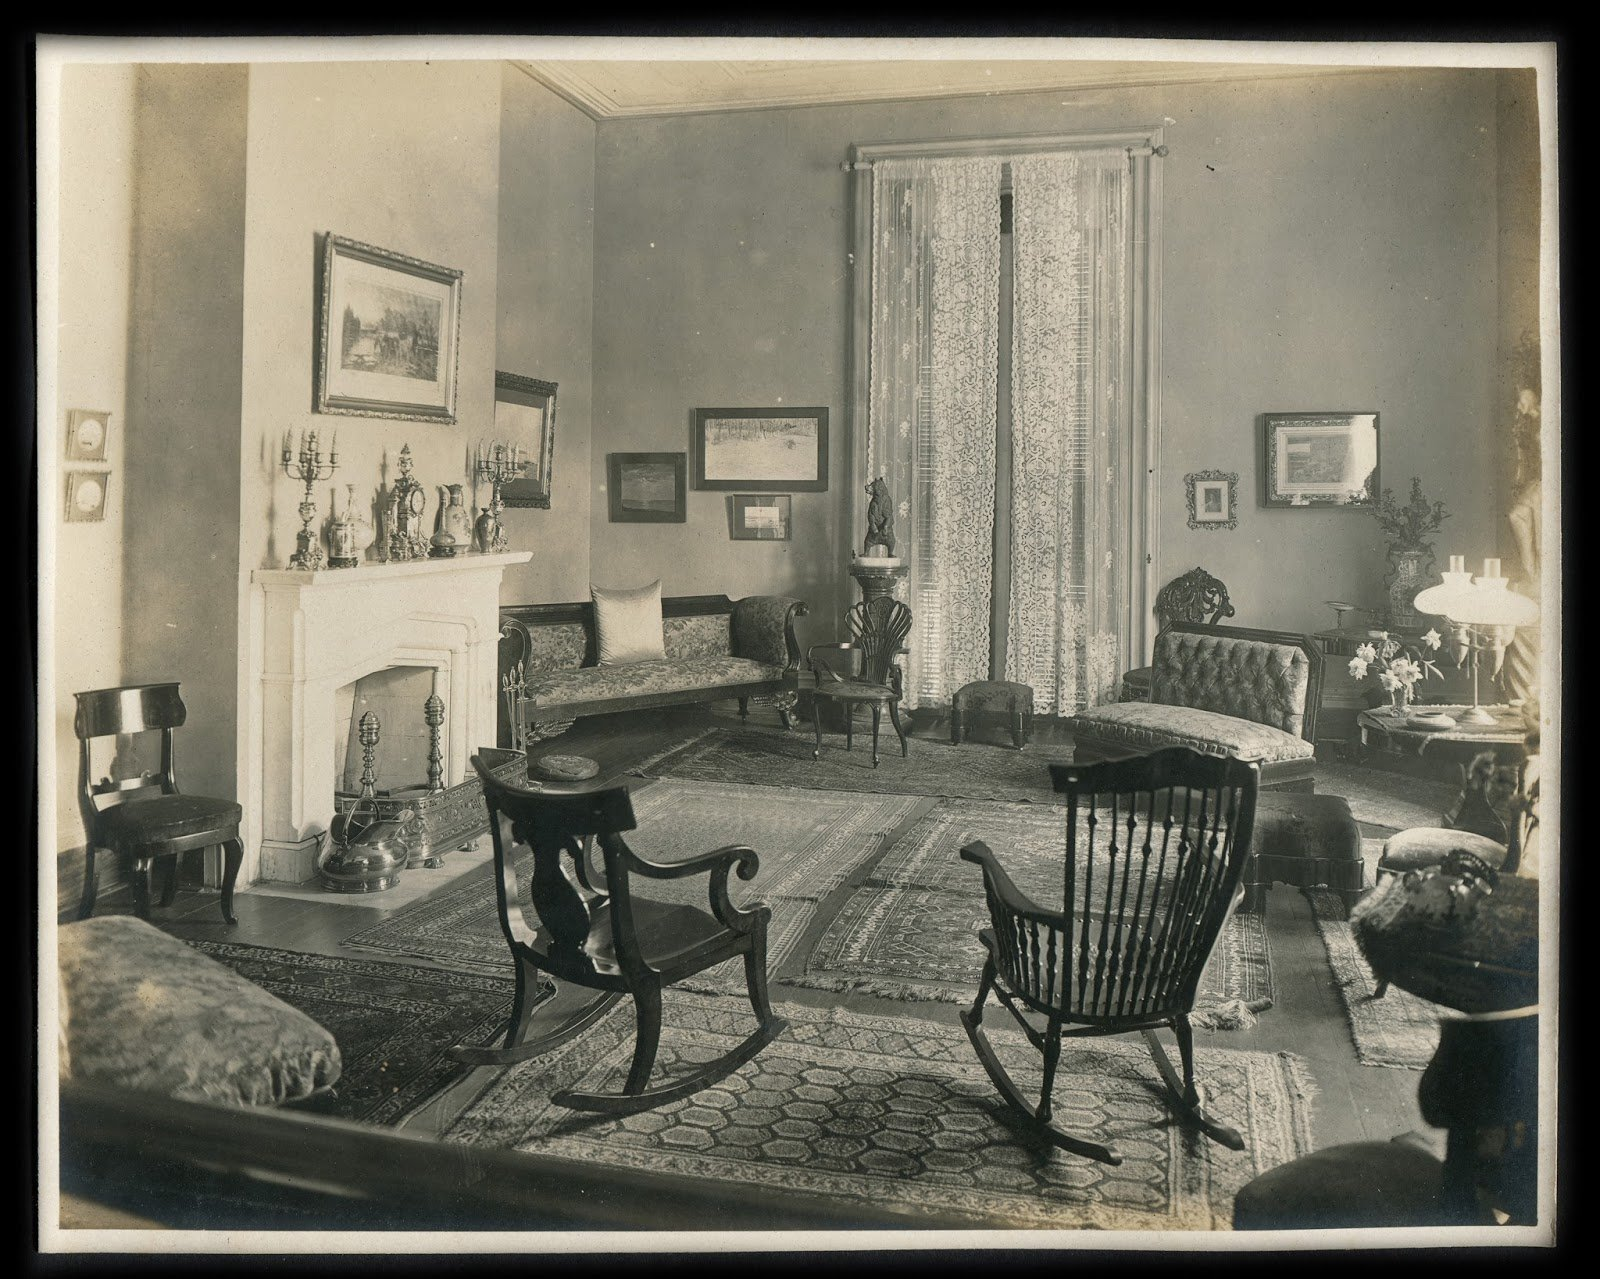 Parlor at Clover Bottom Mansion, Donelson, Tenn., 1918 May 14. Price-Gay Family Papers, 1822-1944, Box 18, Folder 5. Credit: Tennessee State Library and Archives